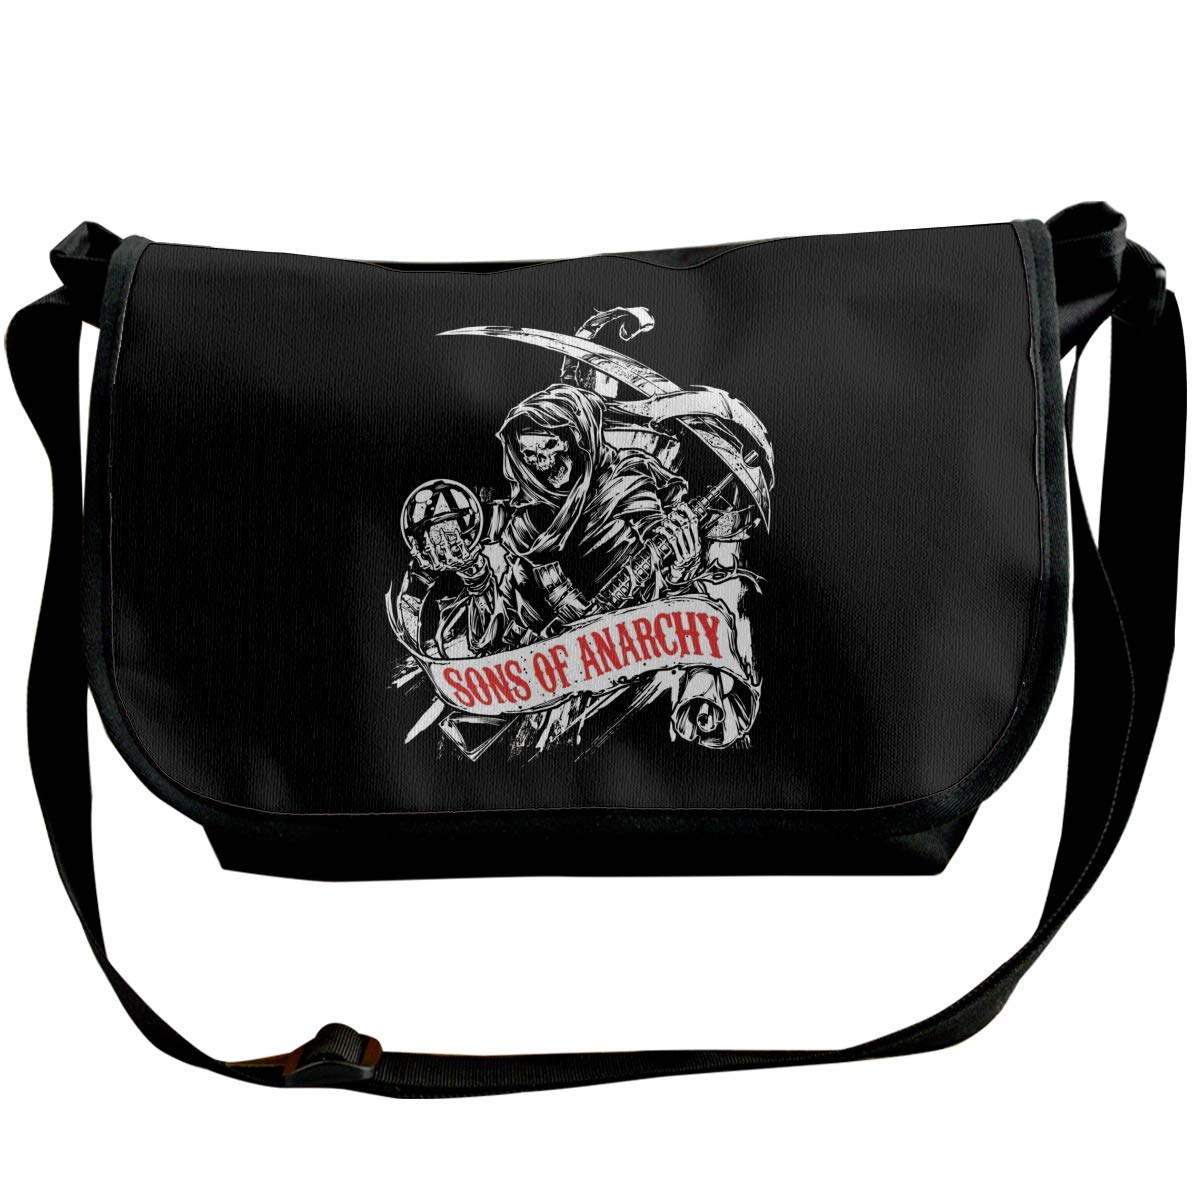 Classic Sons Of Anarchy Messenger Bag Shoulder Bag For All-Purpose Use